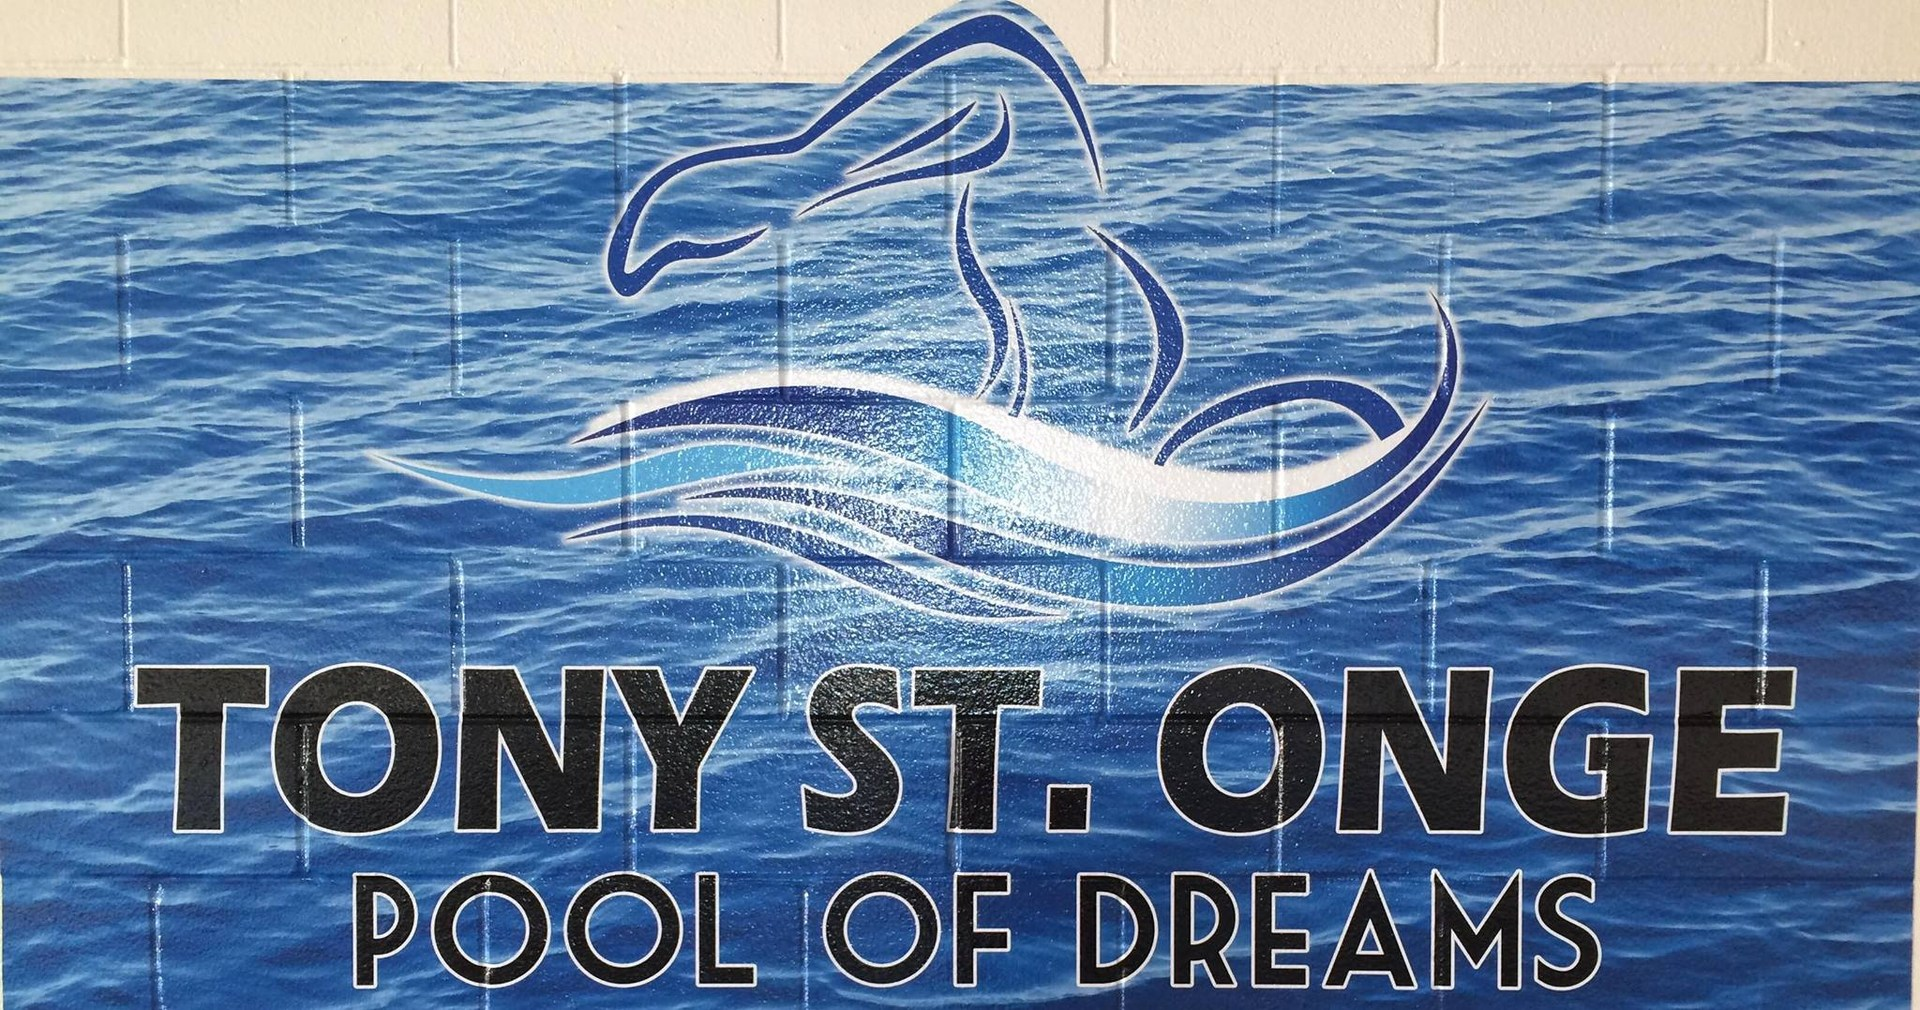 Tony St. Onge Pool of Dreams mural